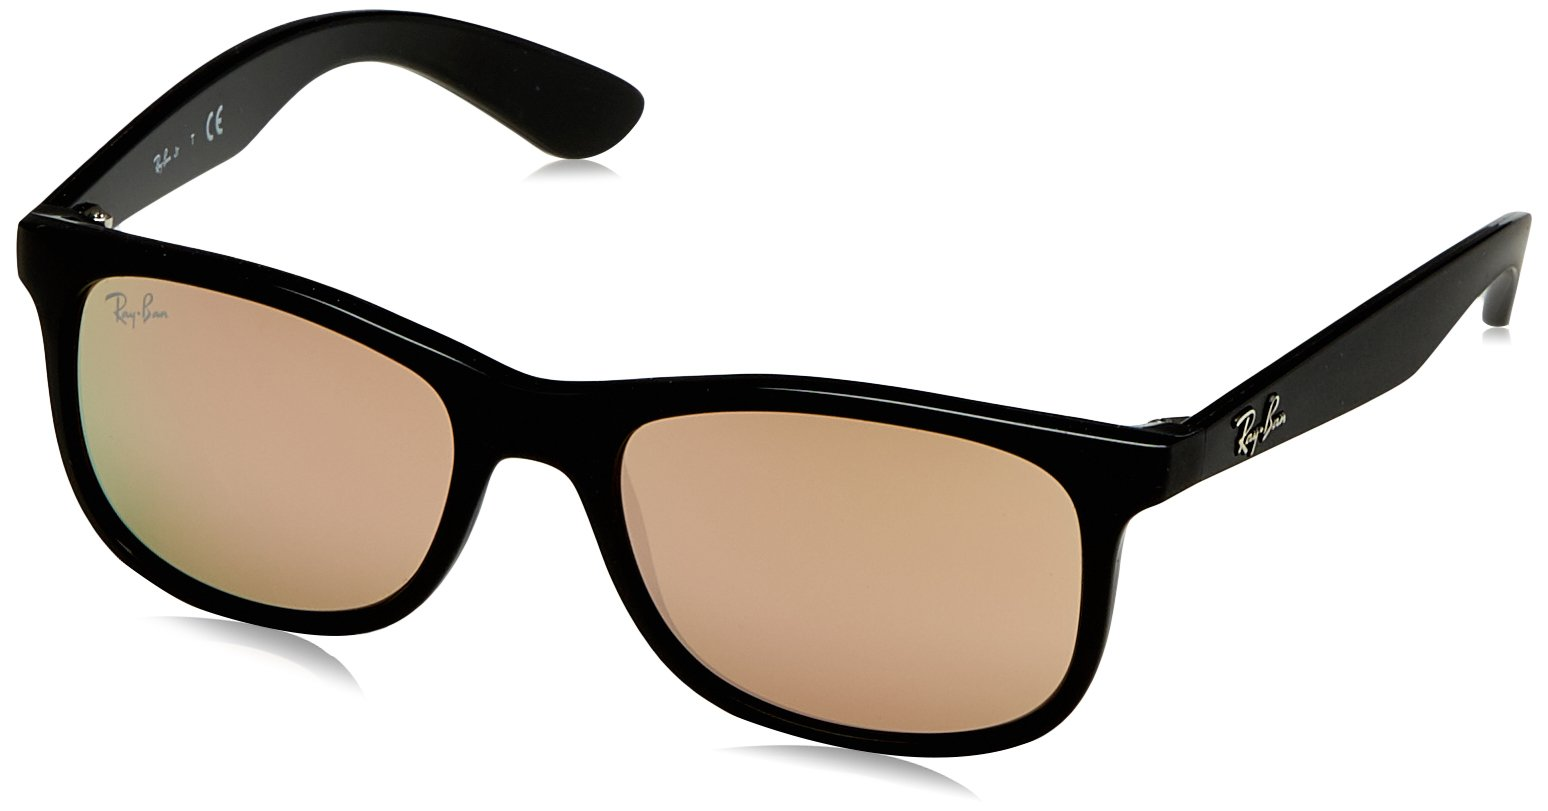 RAY-BAN JUNIOR Kids' RJ9062S Rectangular Kids Sunglasses, Matte Black On Black/Copper Mirror, 48 mm by RAY-BAN JUNIOR